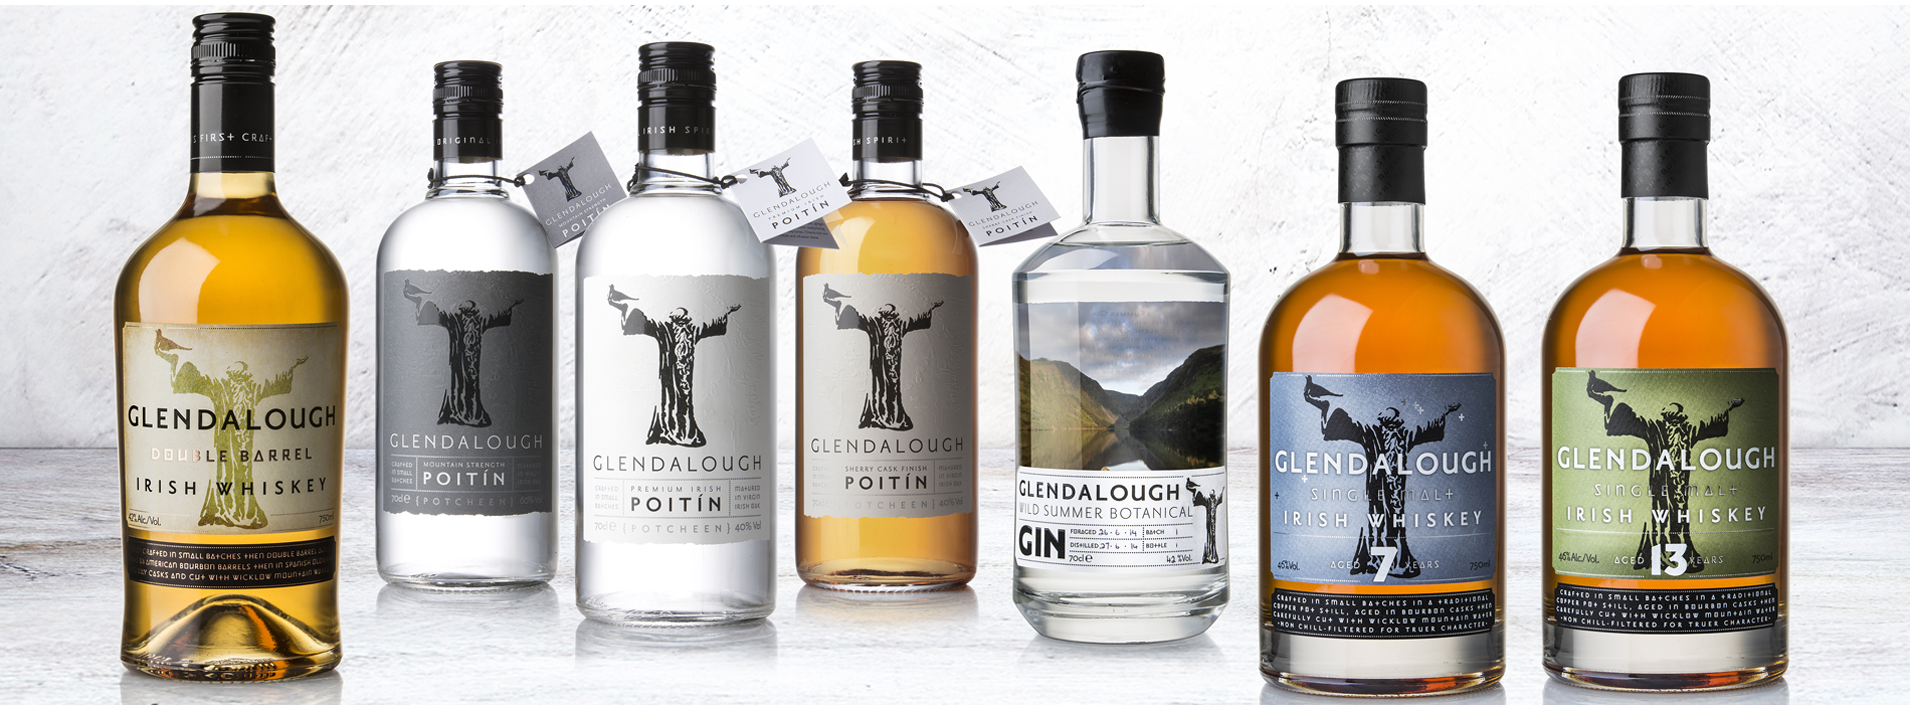 Landscape image of the Glendalough Distillery product range